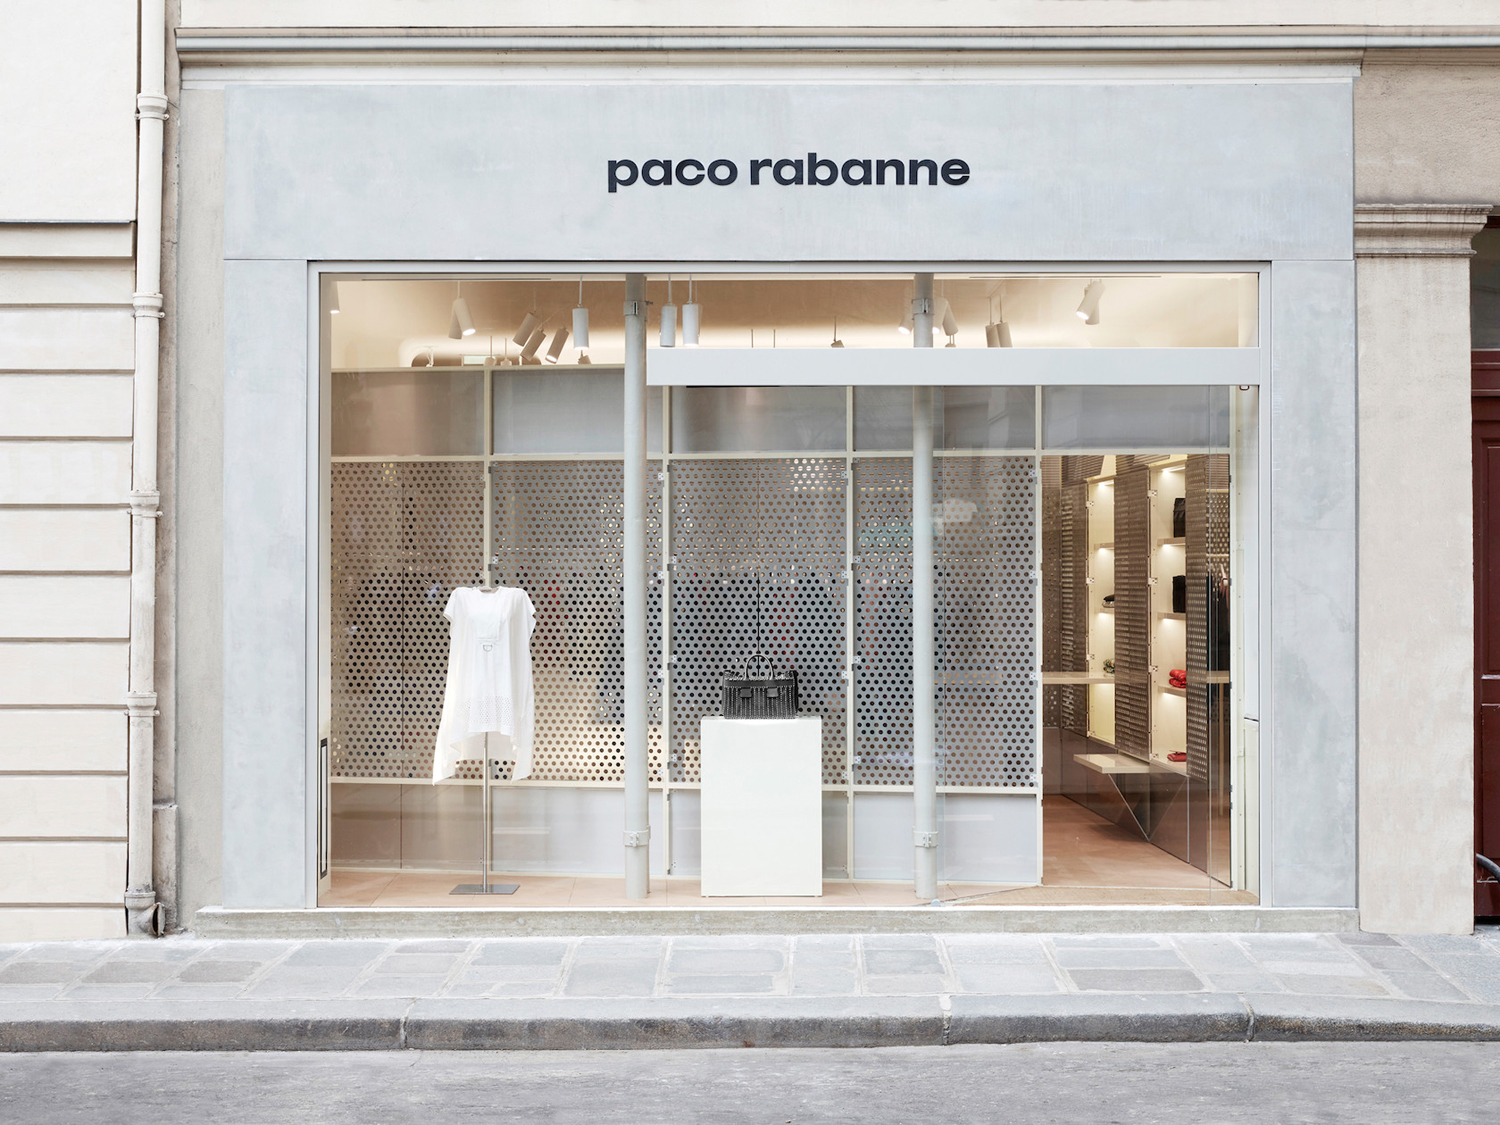 Logotype and signage for Paco Rabanne by Zak Group, United Kingdom